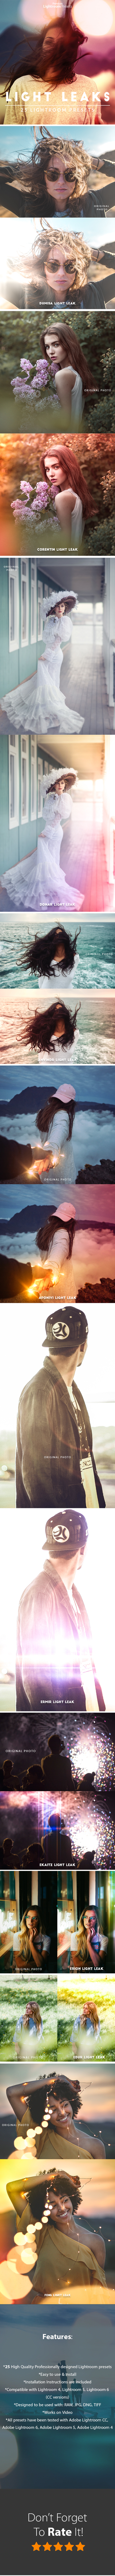 GraphicRiver 25 Light Leaks Lightroom Presets For Lightroom 4 5 6 CC 20815364